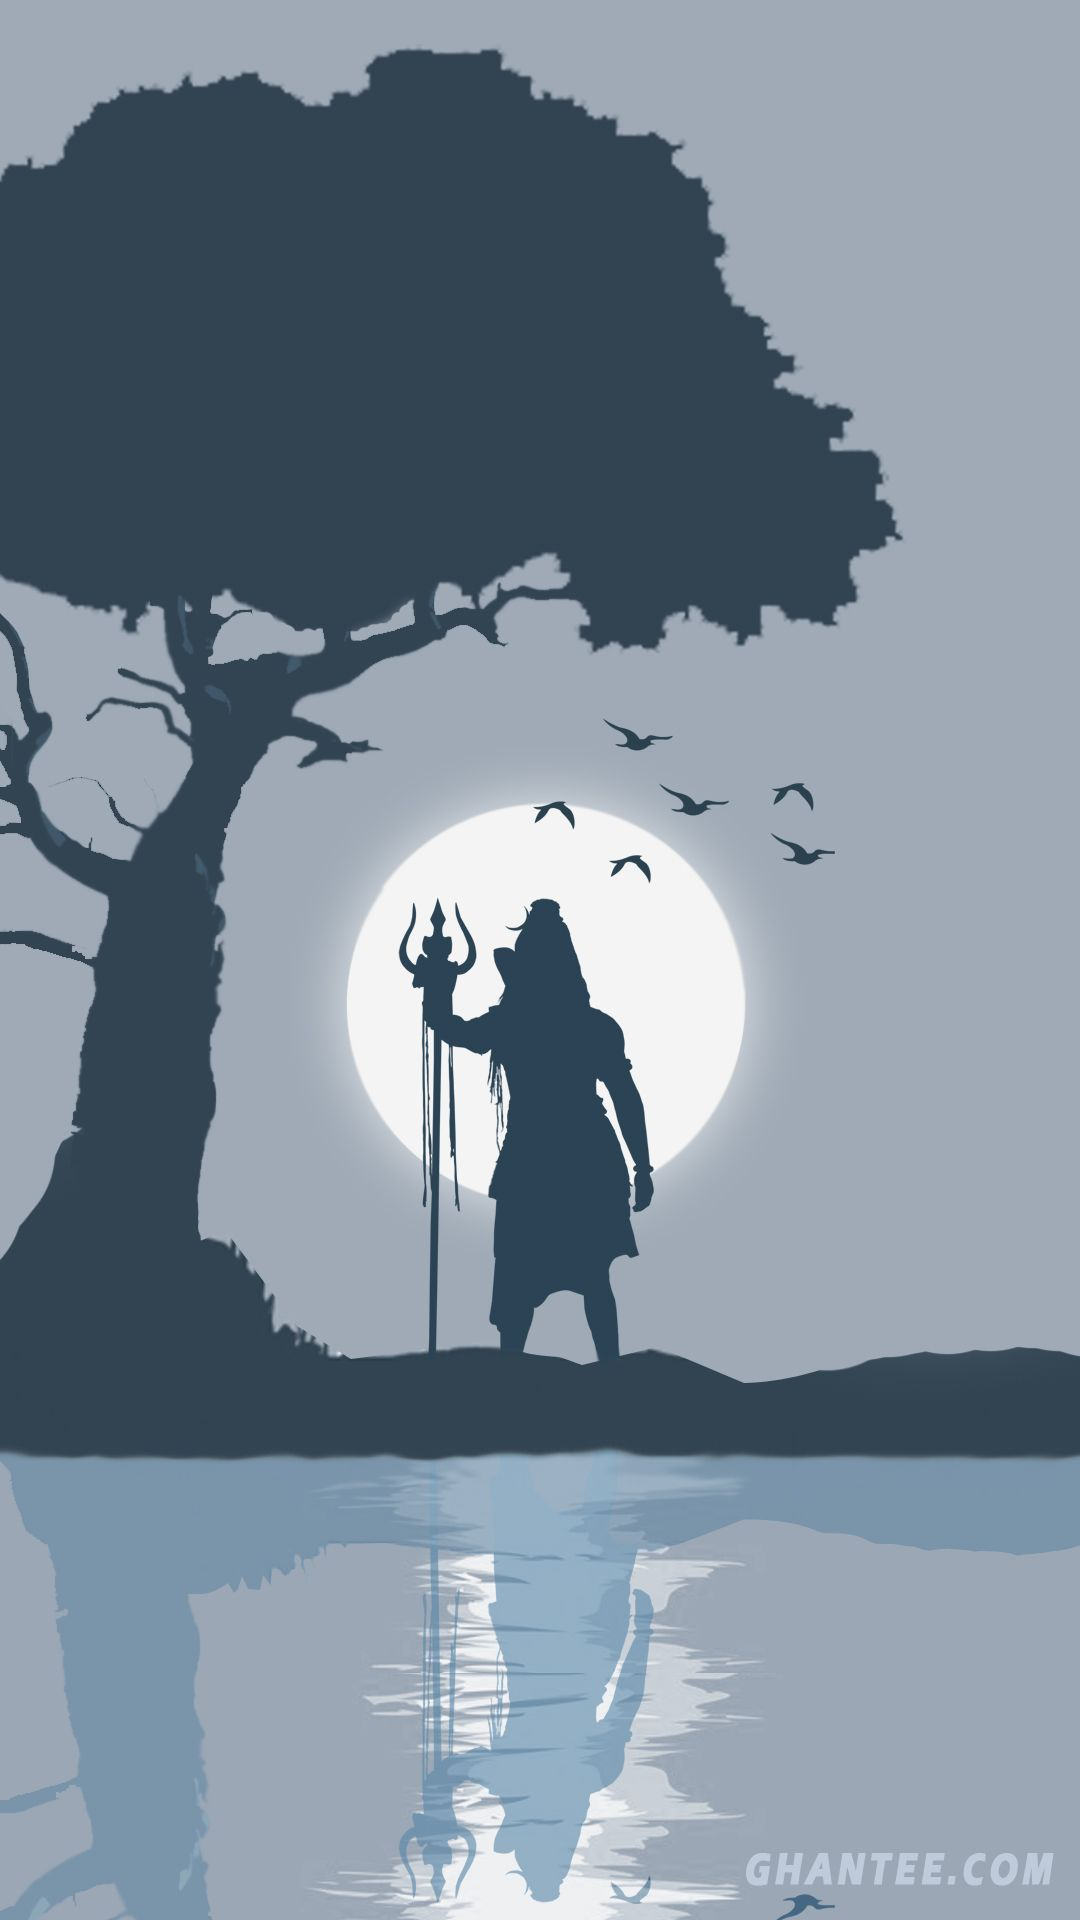 Lord Shiva Hd Wallpapers Minimalist Grey Phone Wallpaper Lord Shiva Hd Wallpaper Shiva Lord Wallpapers Shiva Wallpaper